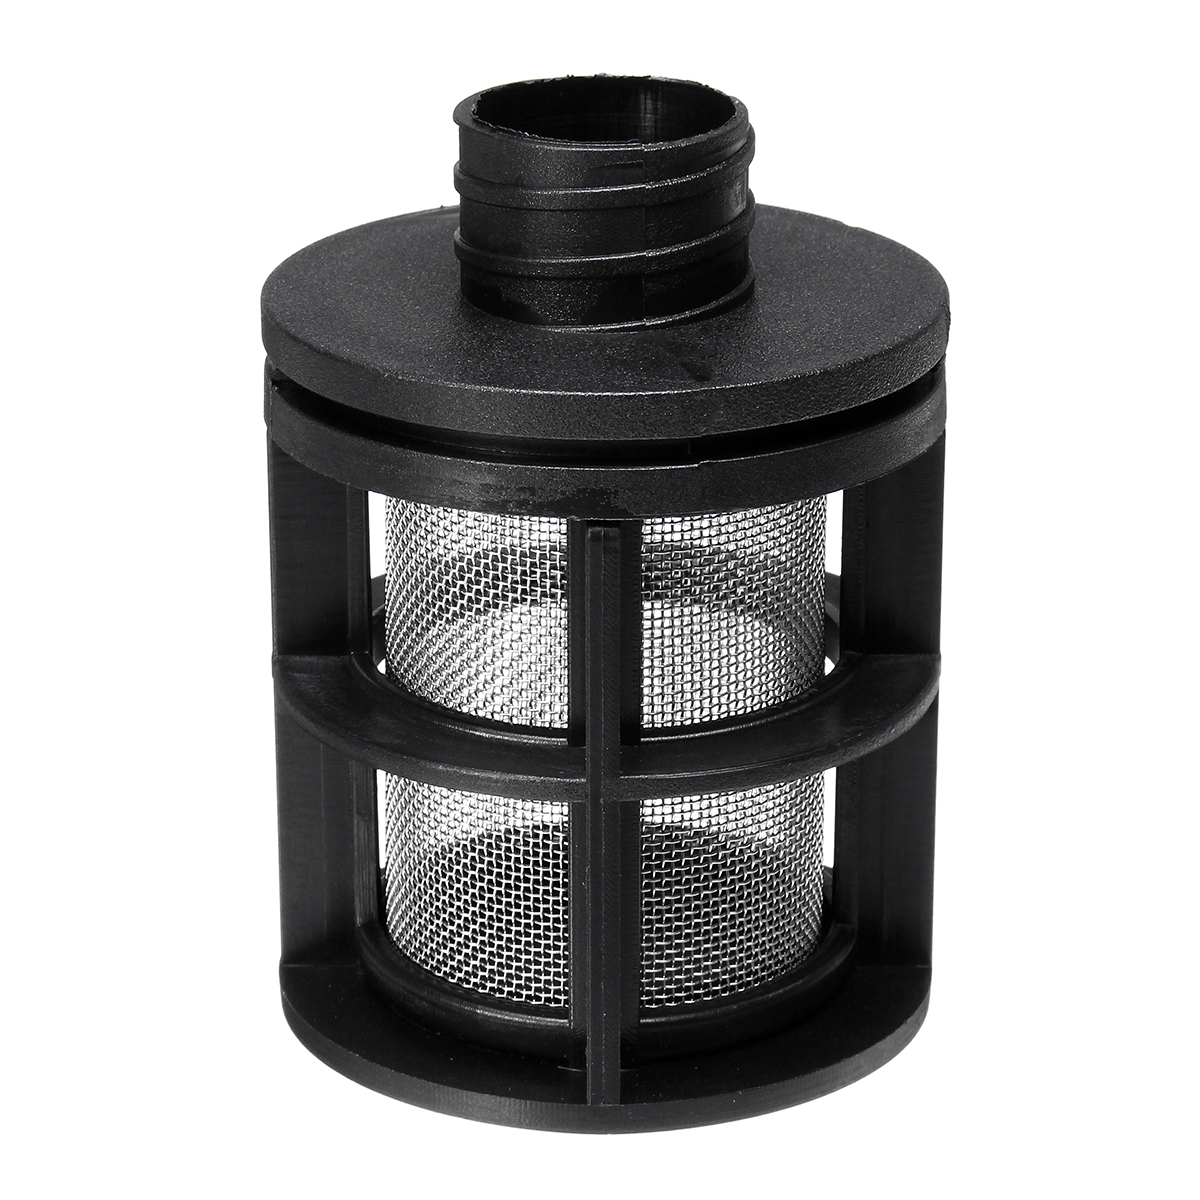 25mm Air Intake Filter Silencer For Dometic Eberspacher